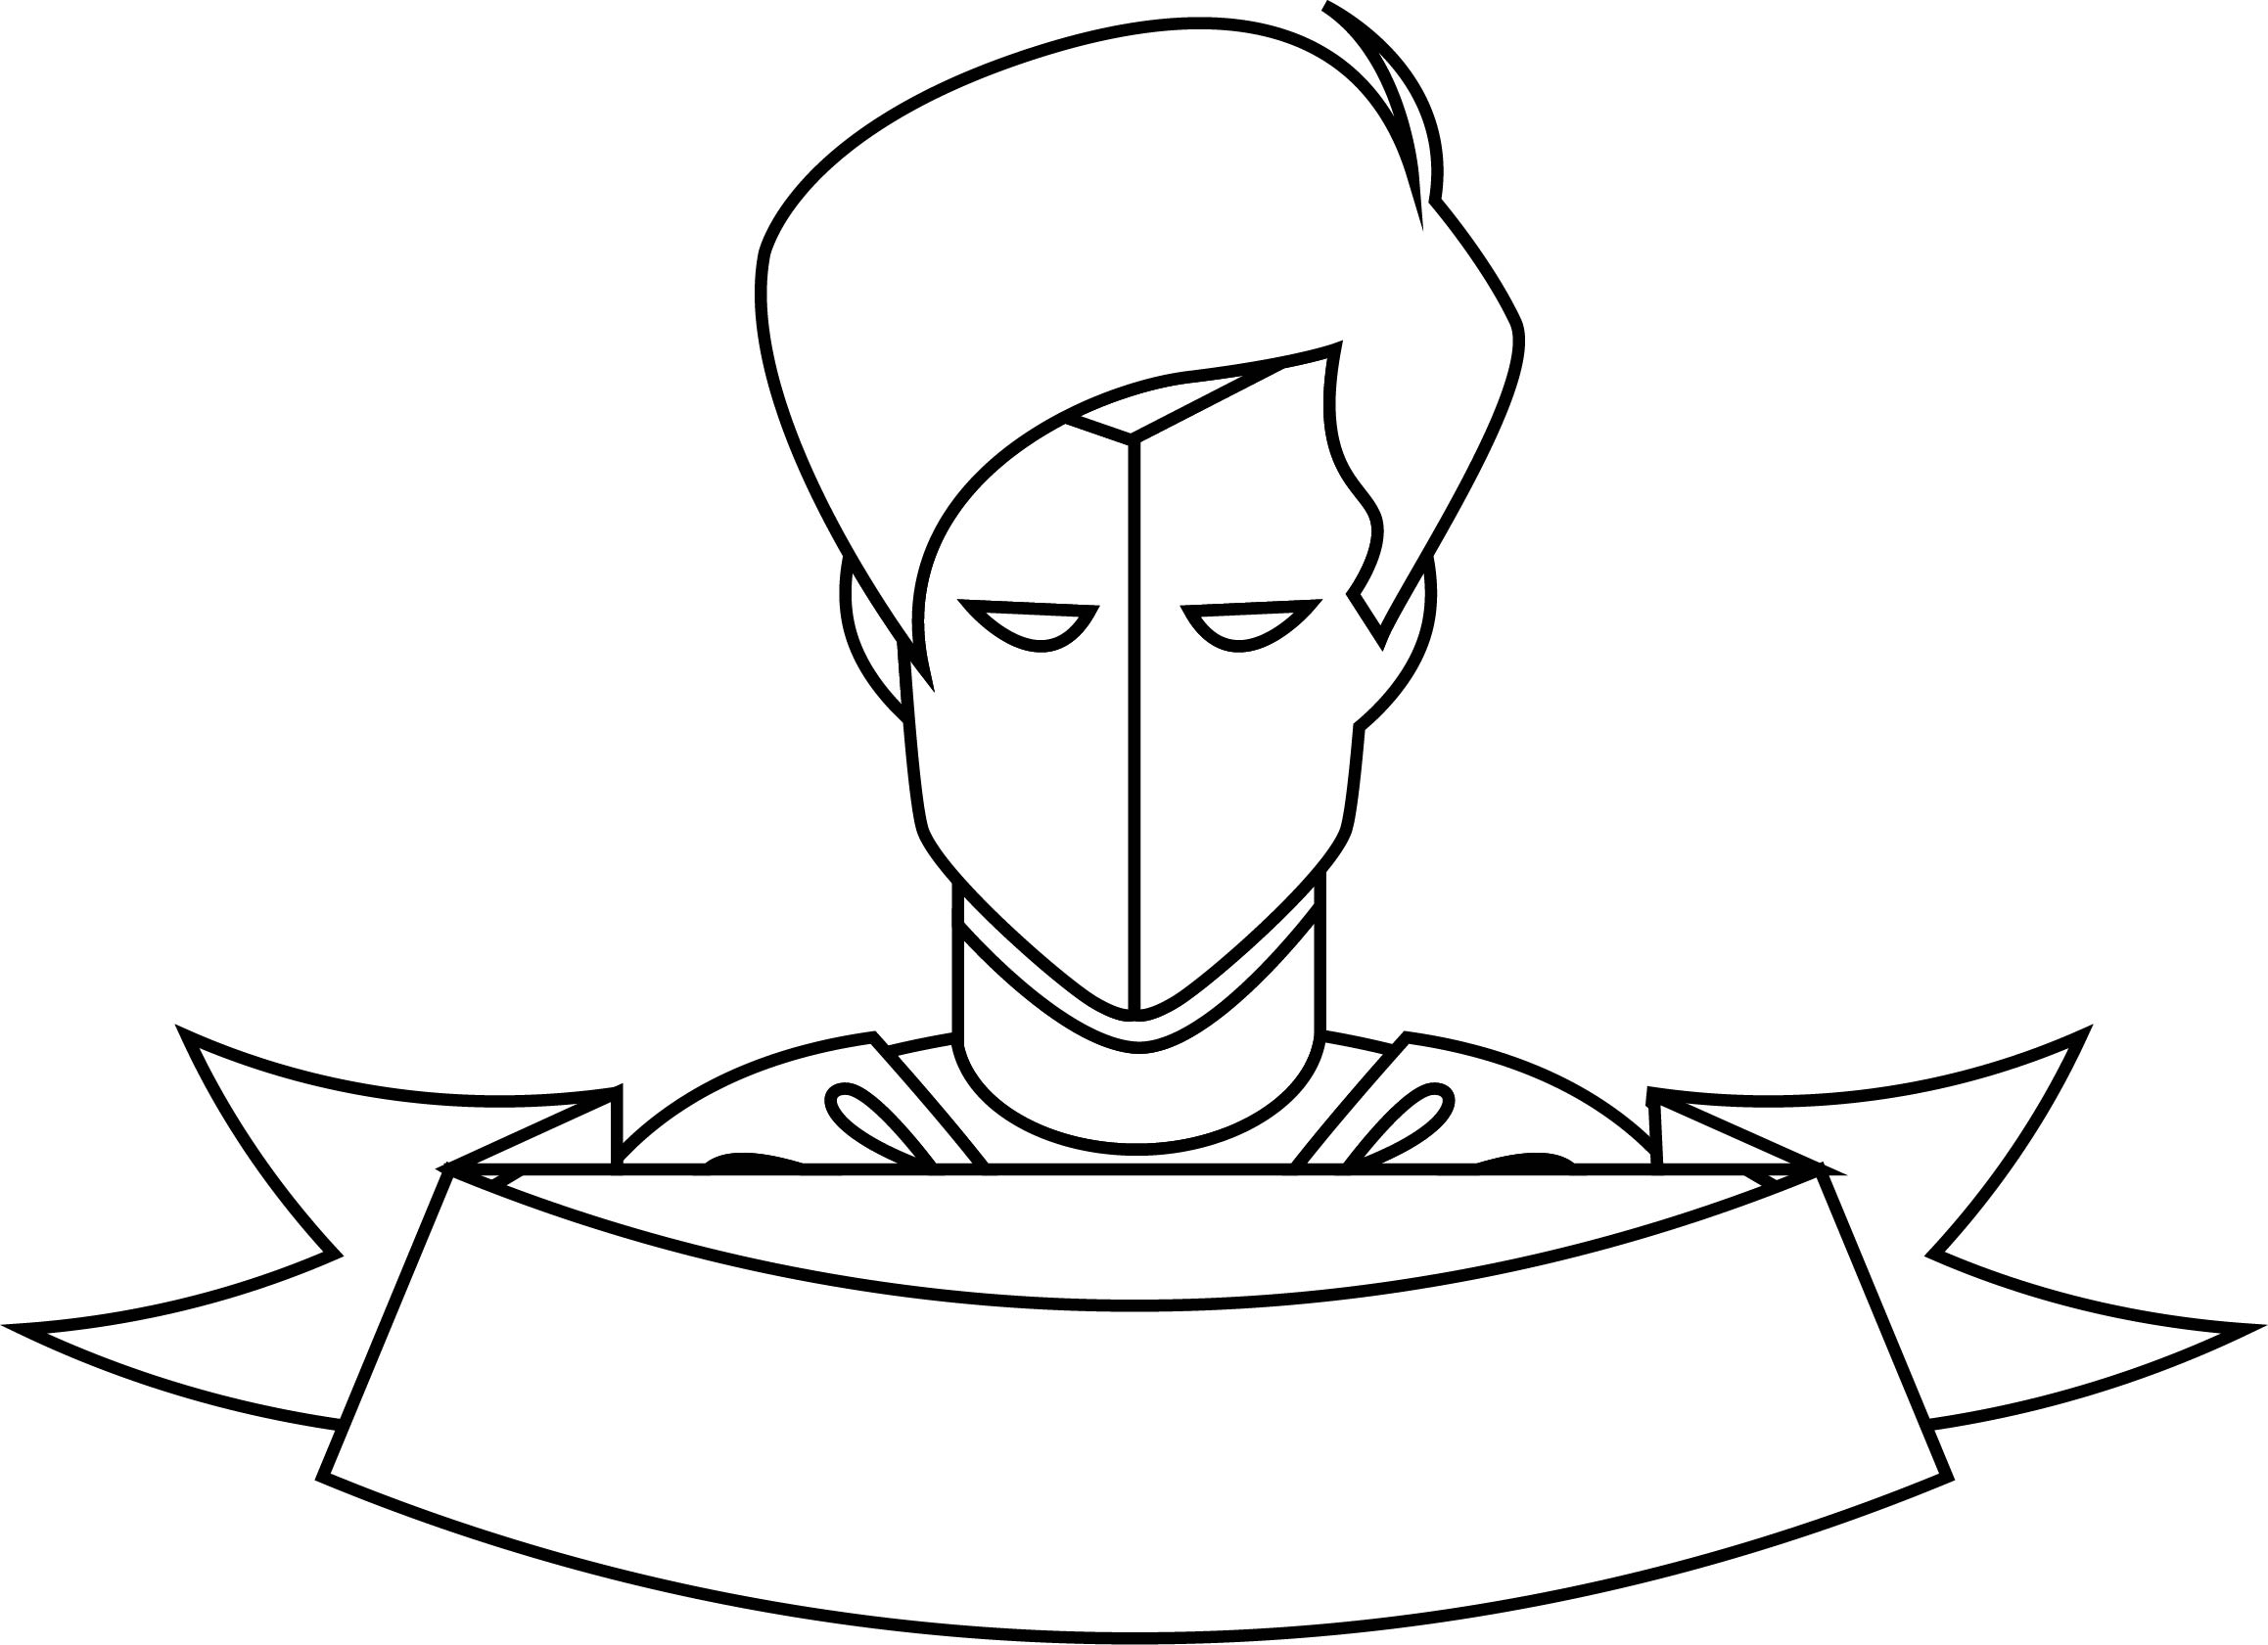 Super Hero Coloring Page Face 01